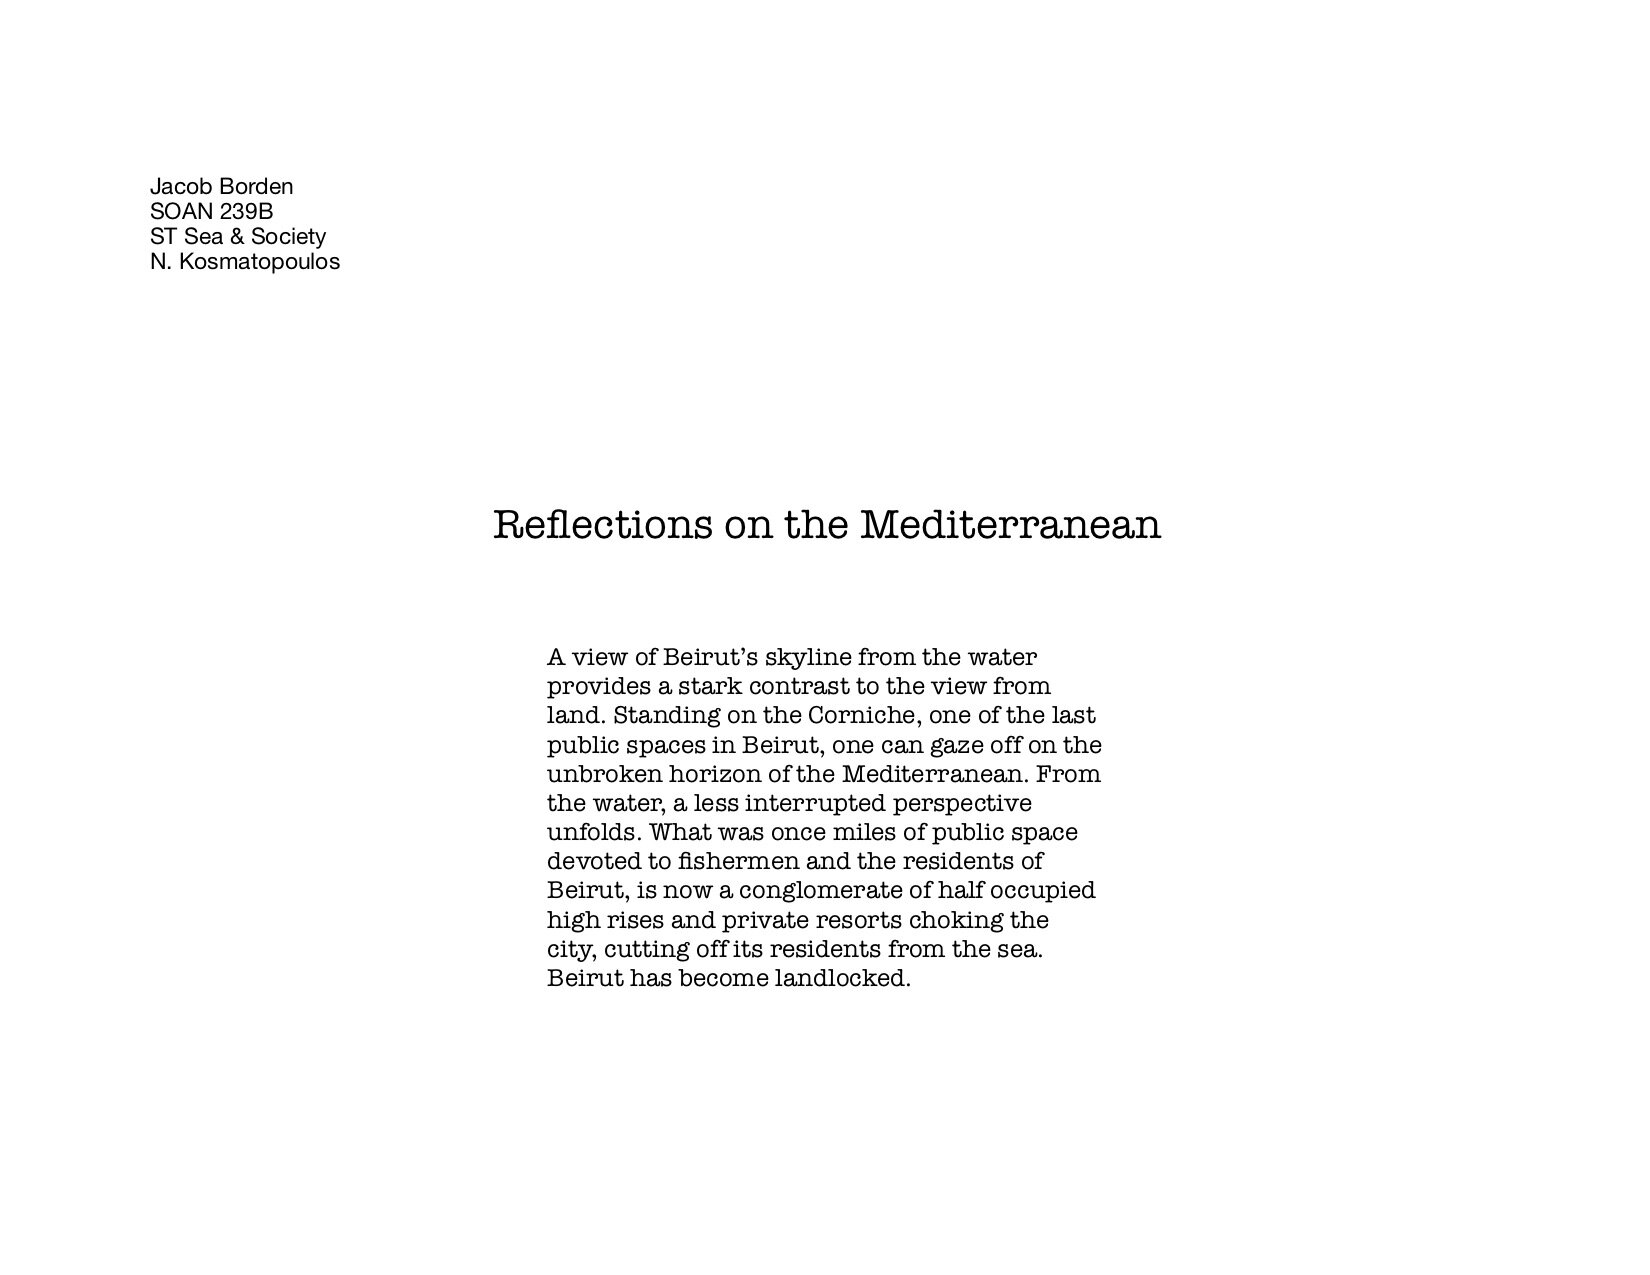 Borden+Photo+Essay+-+Reflections+on+the+Mediteranean+.jpg